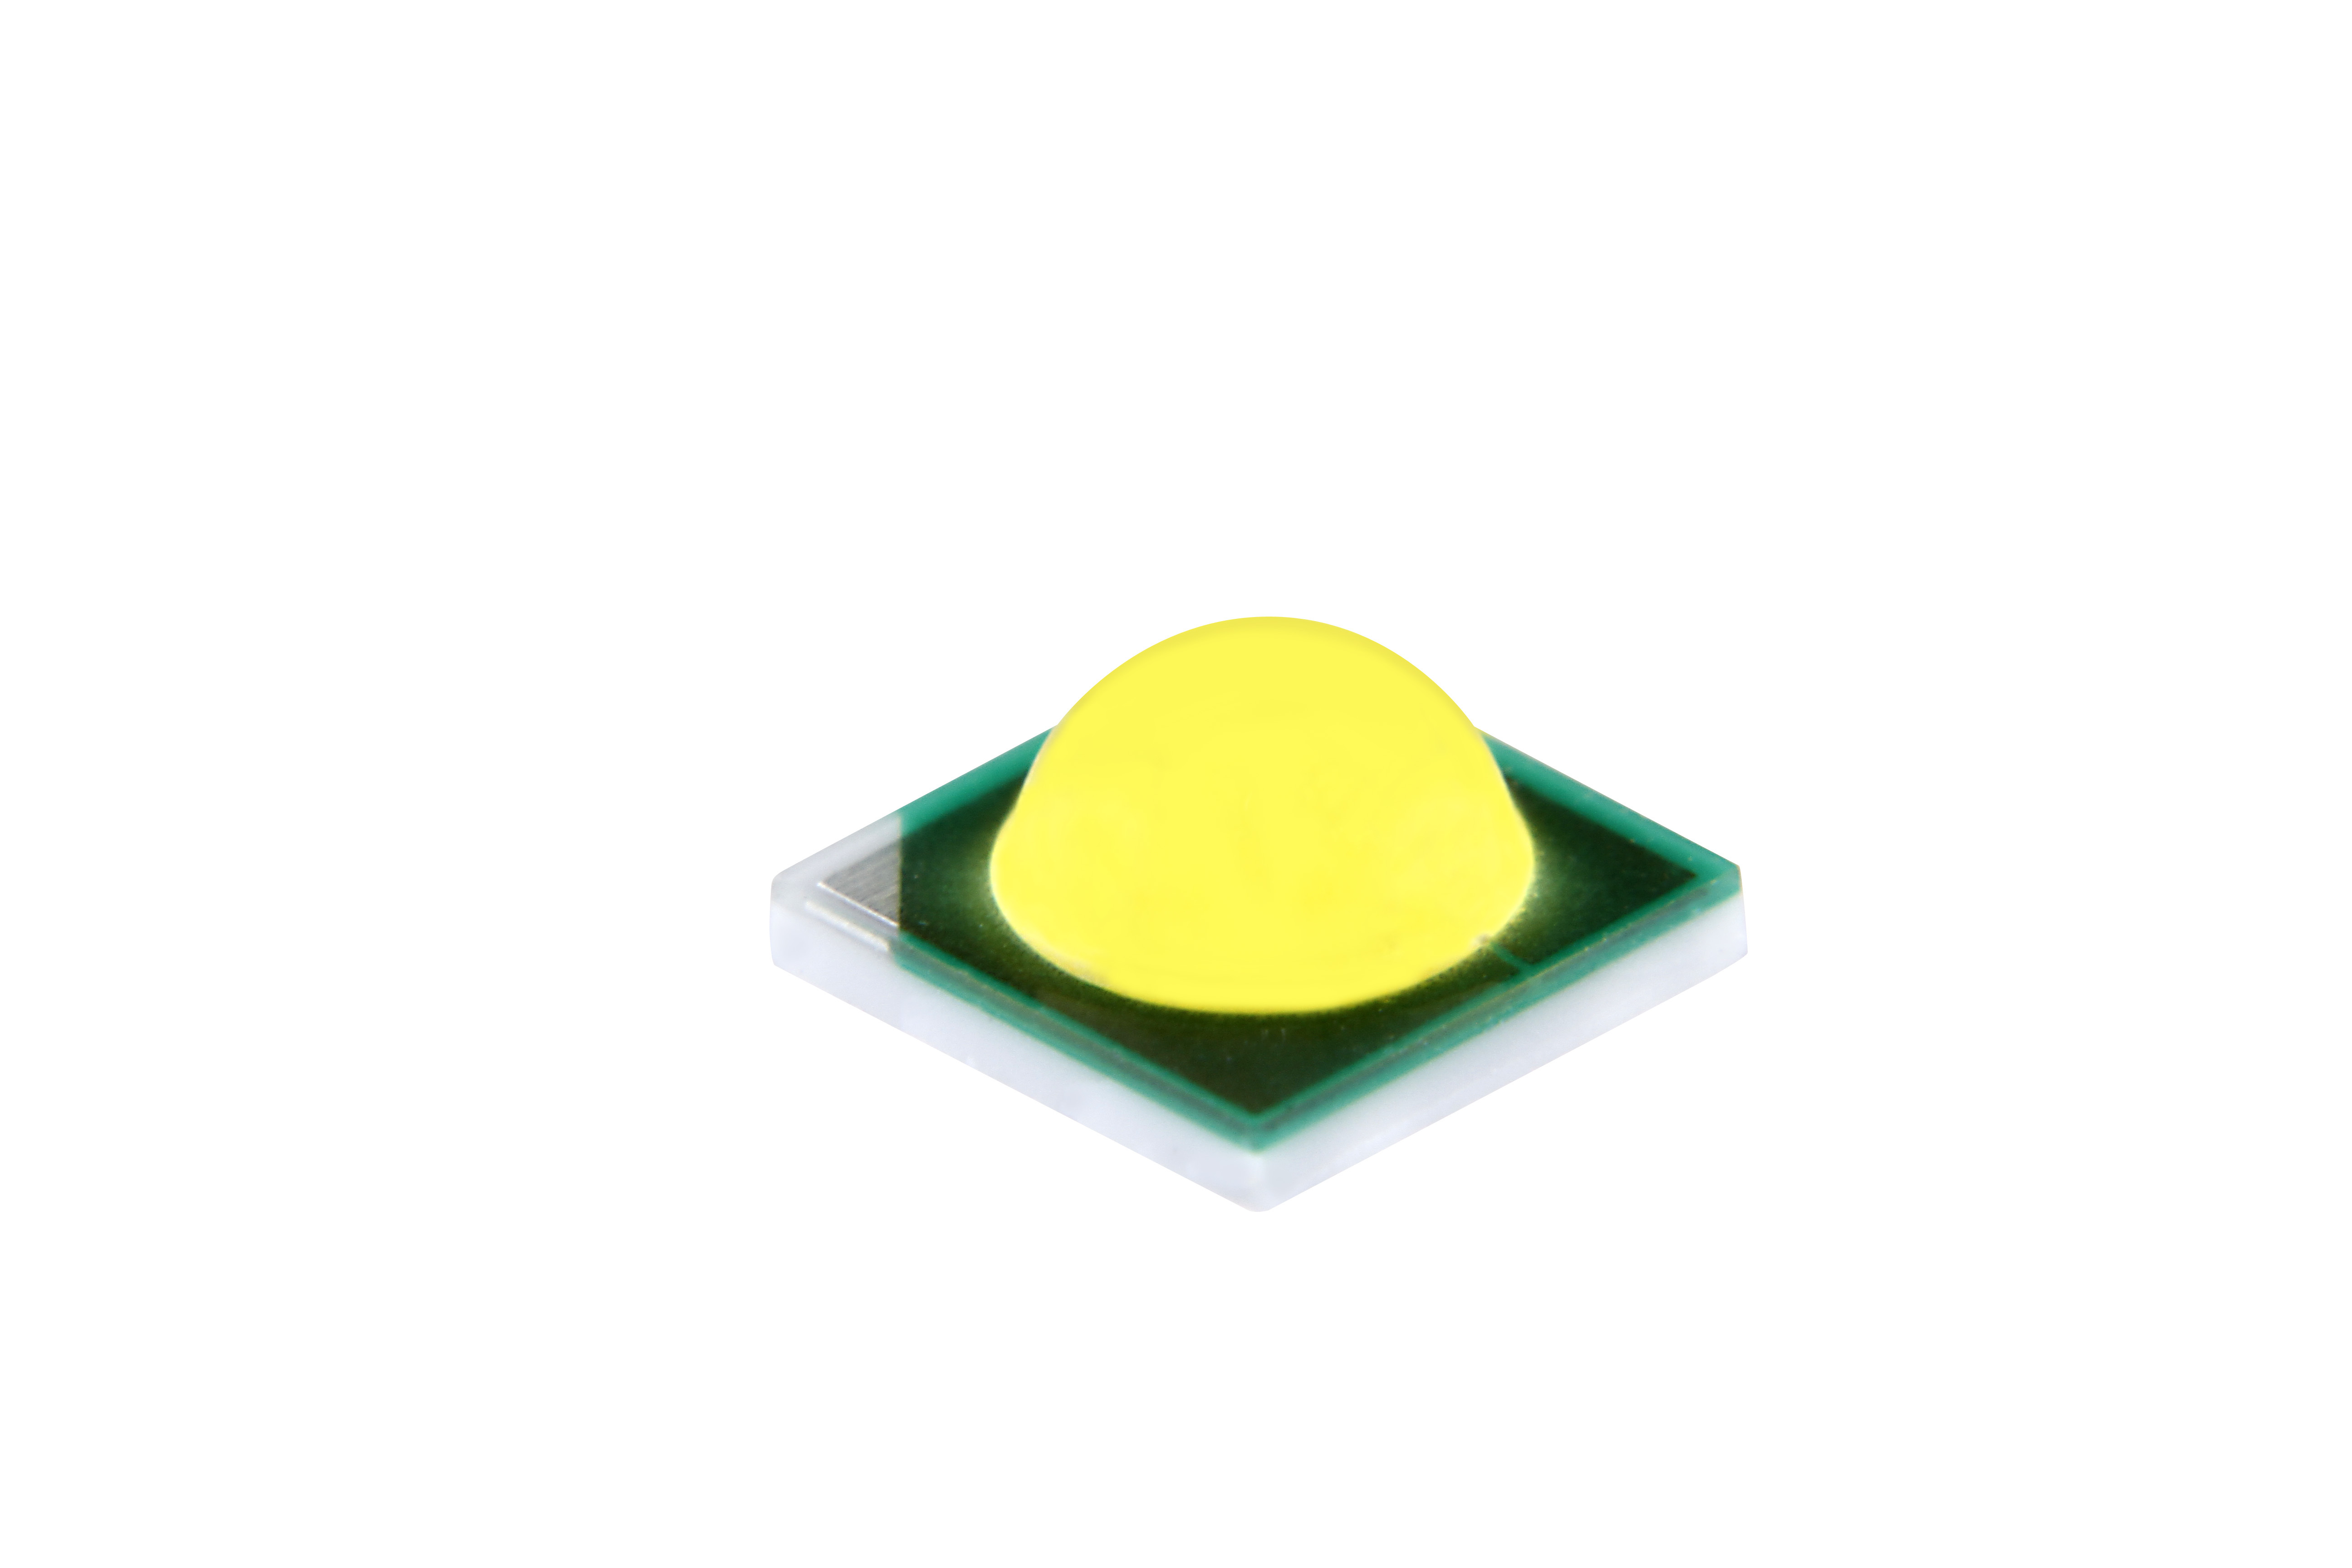 """Toshiba White LED: 3.5 x 3.5mm Lens Package 1W Type """"TL1L2 Series"""" (Photo: Business Wire)"""